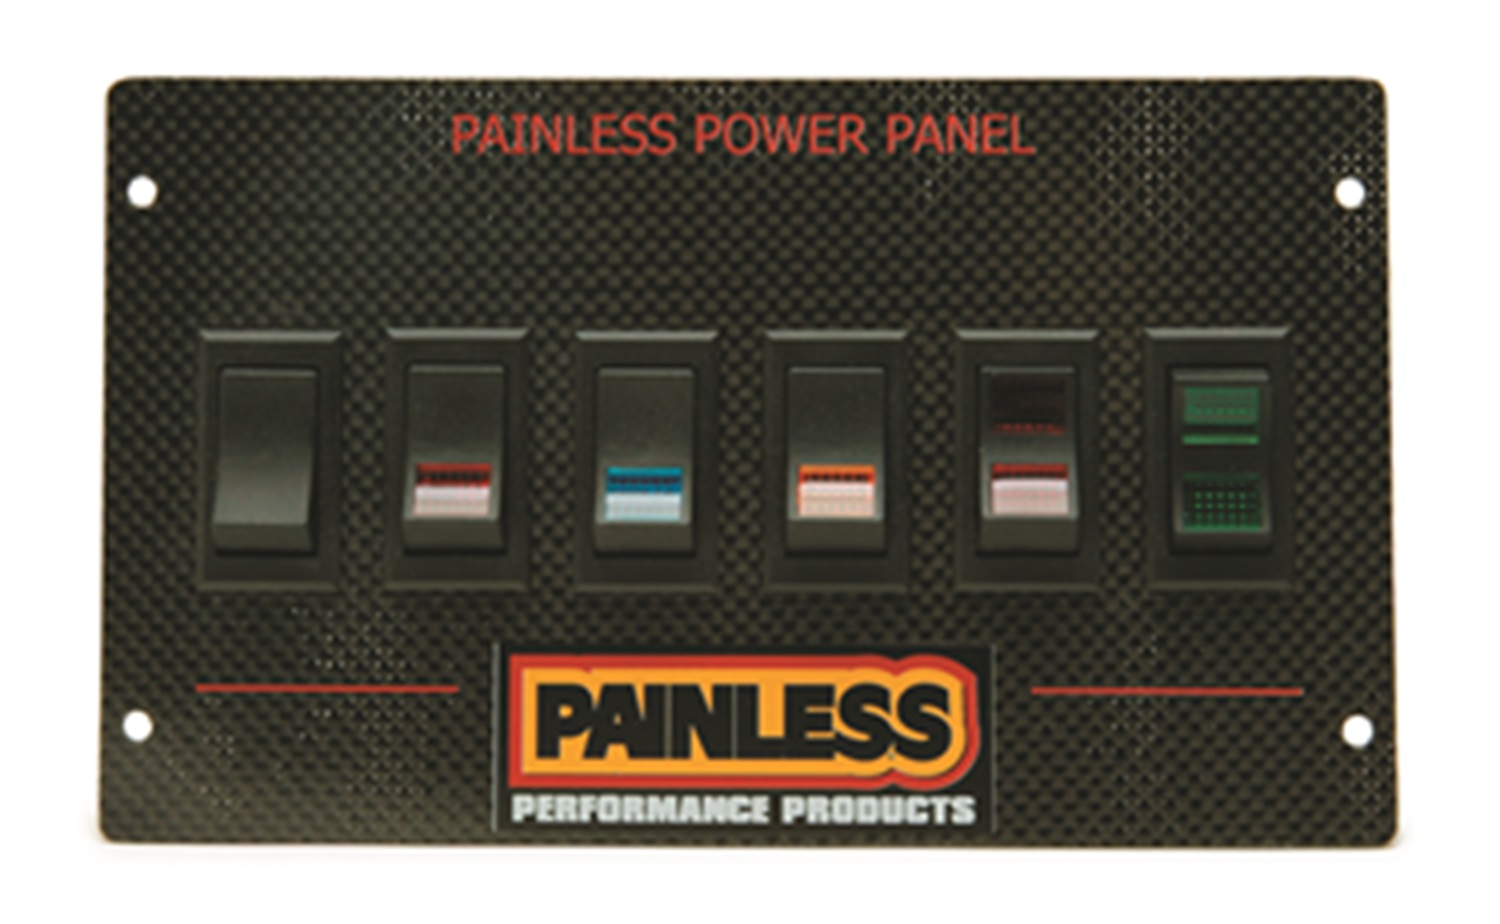 Painless Wiring Multi Purpose Switch Panel Kit